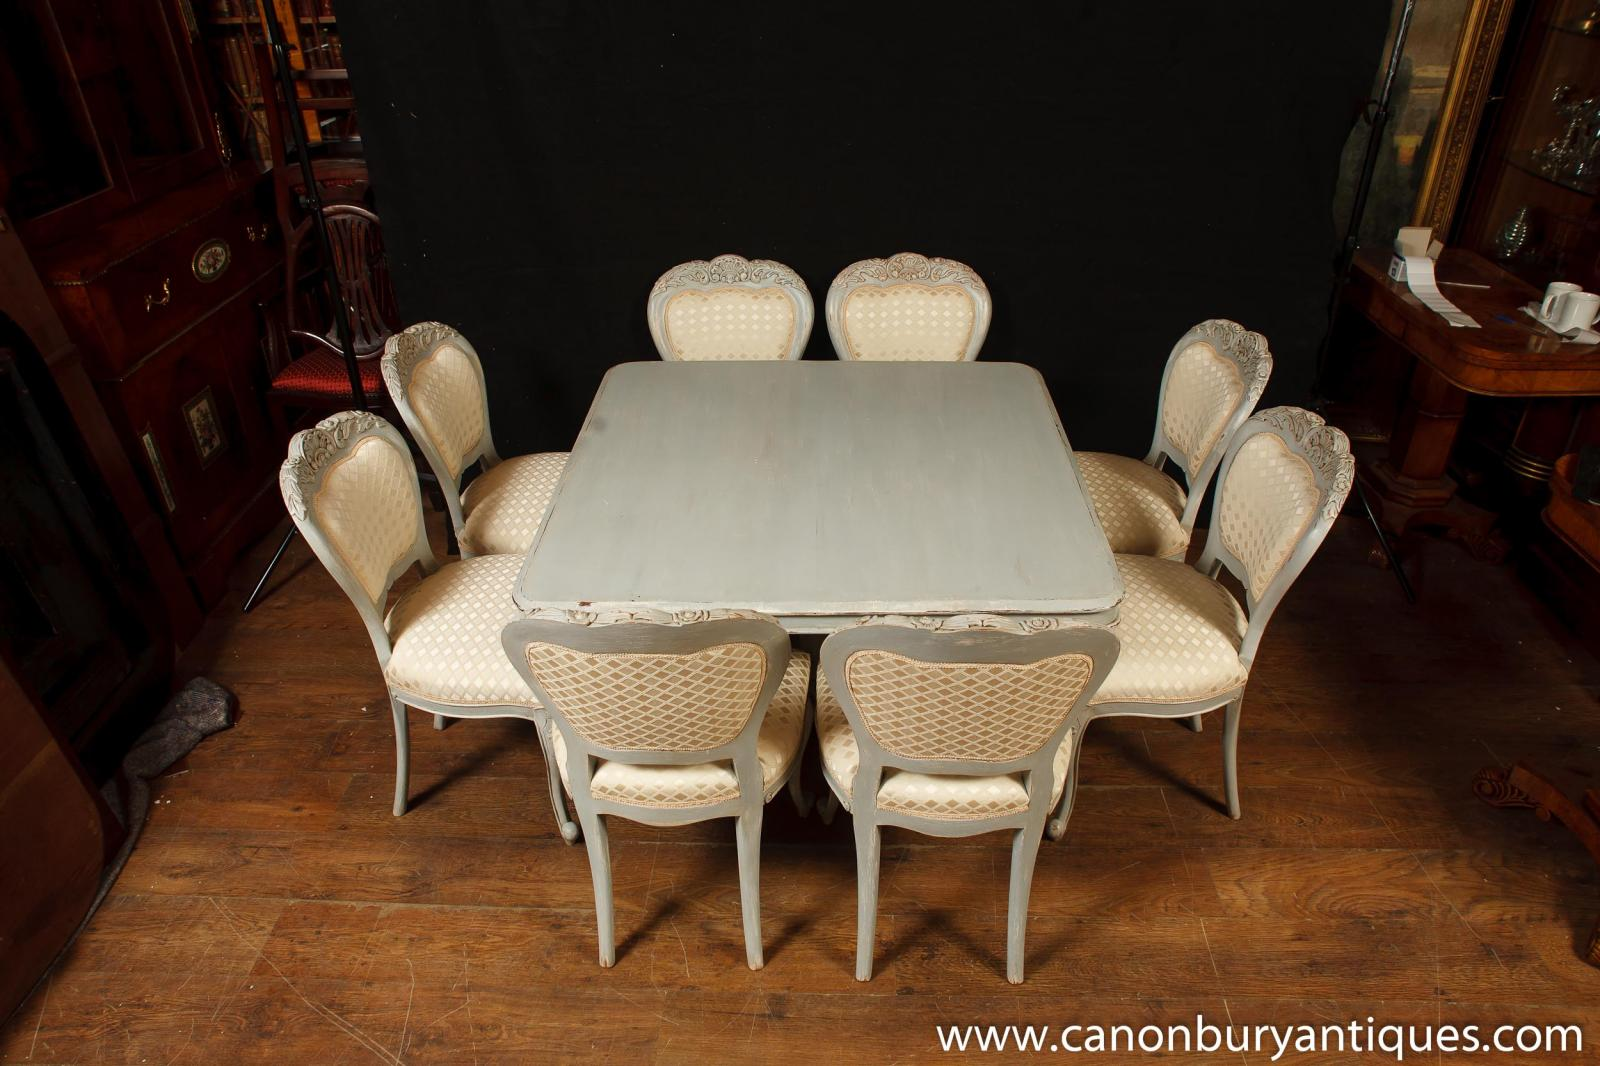 Rustic painted dining chairs - Rustic Painted Dining Chairs